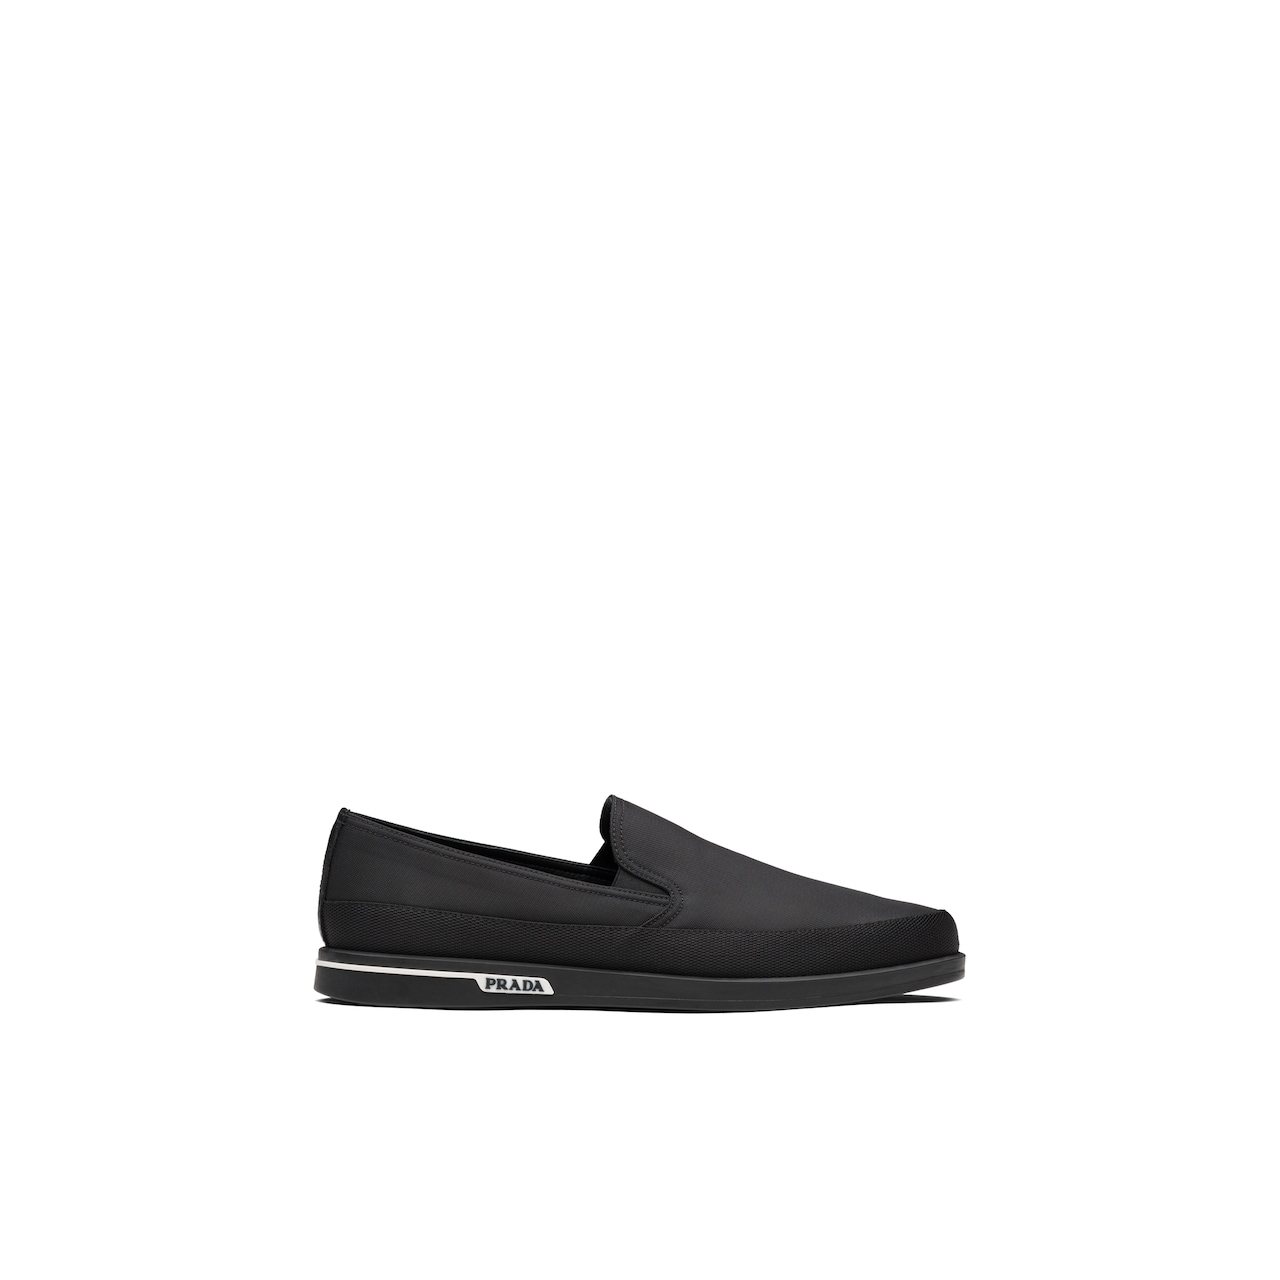 Saint Tropez Technical Fabric Slip-On Sneakers 2